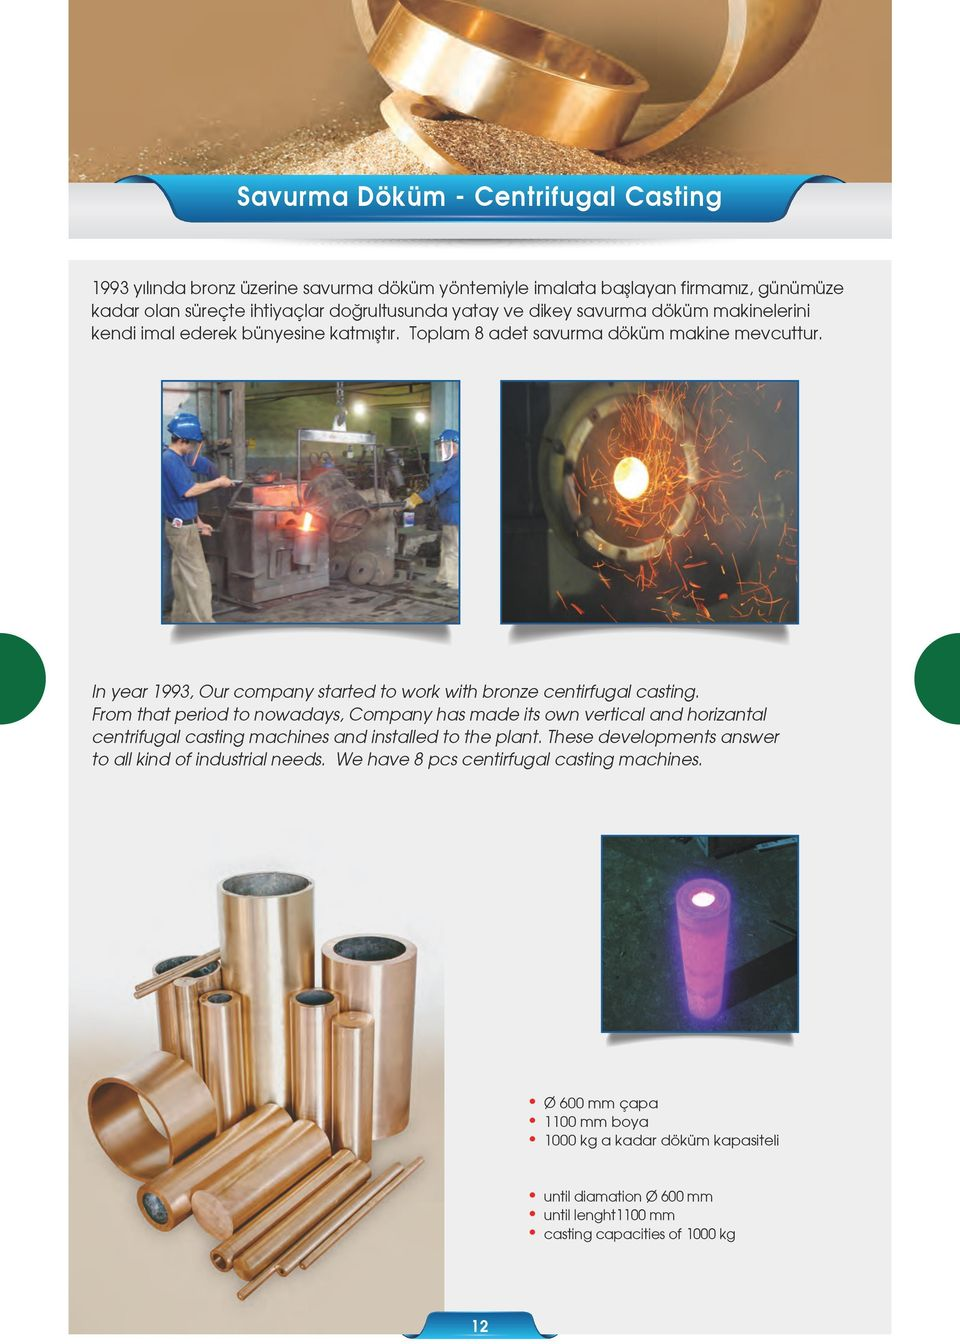 From that period to nowadays, Company has made its own vertical and horizantal centrifugal casting machines and installed to the plant.